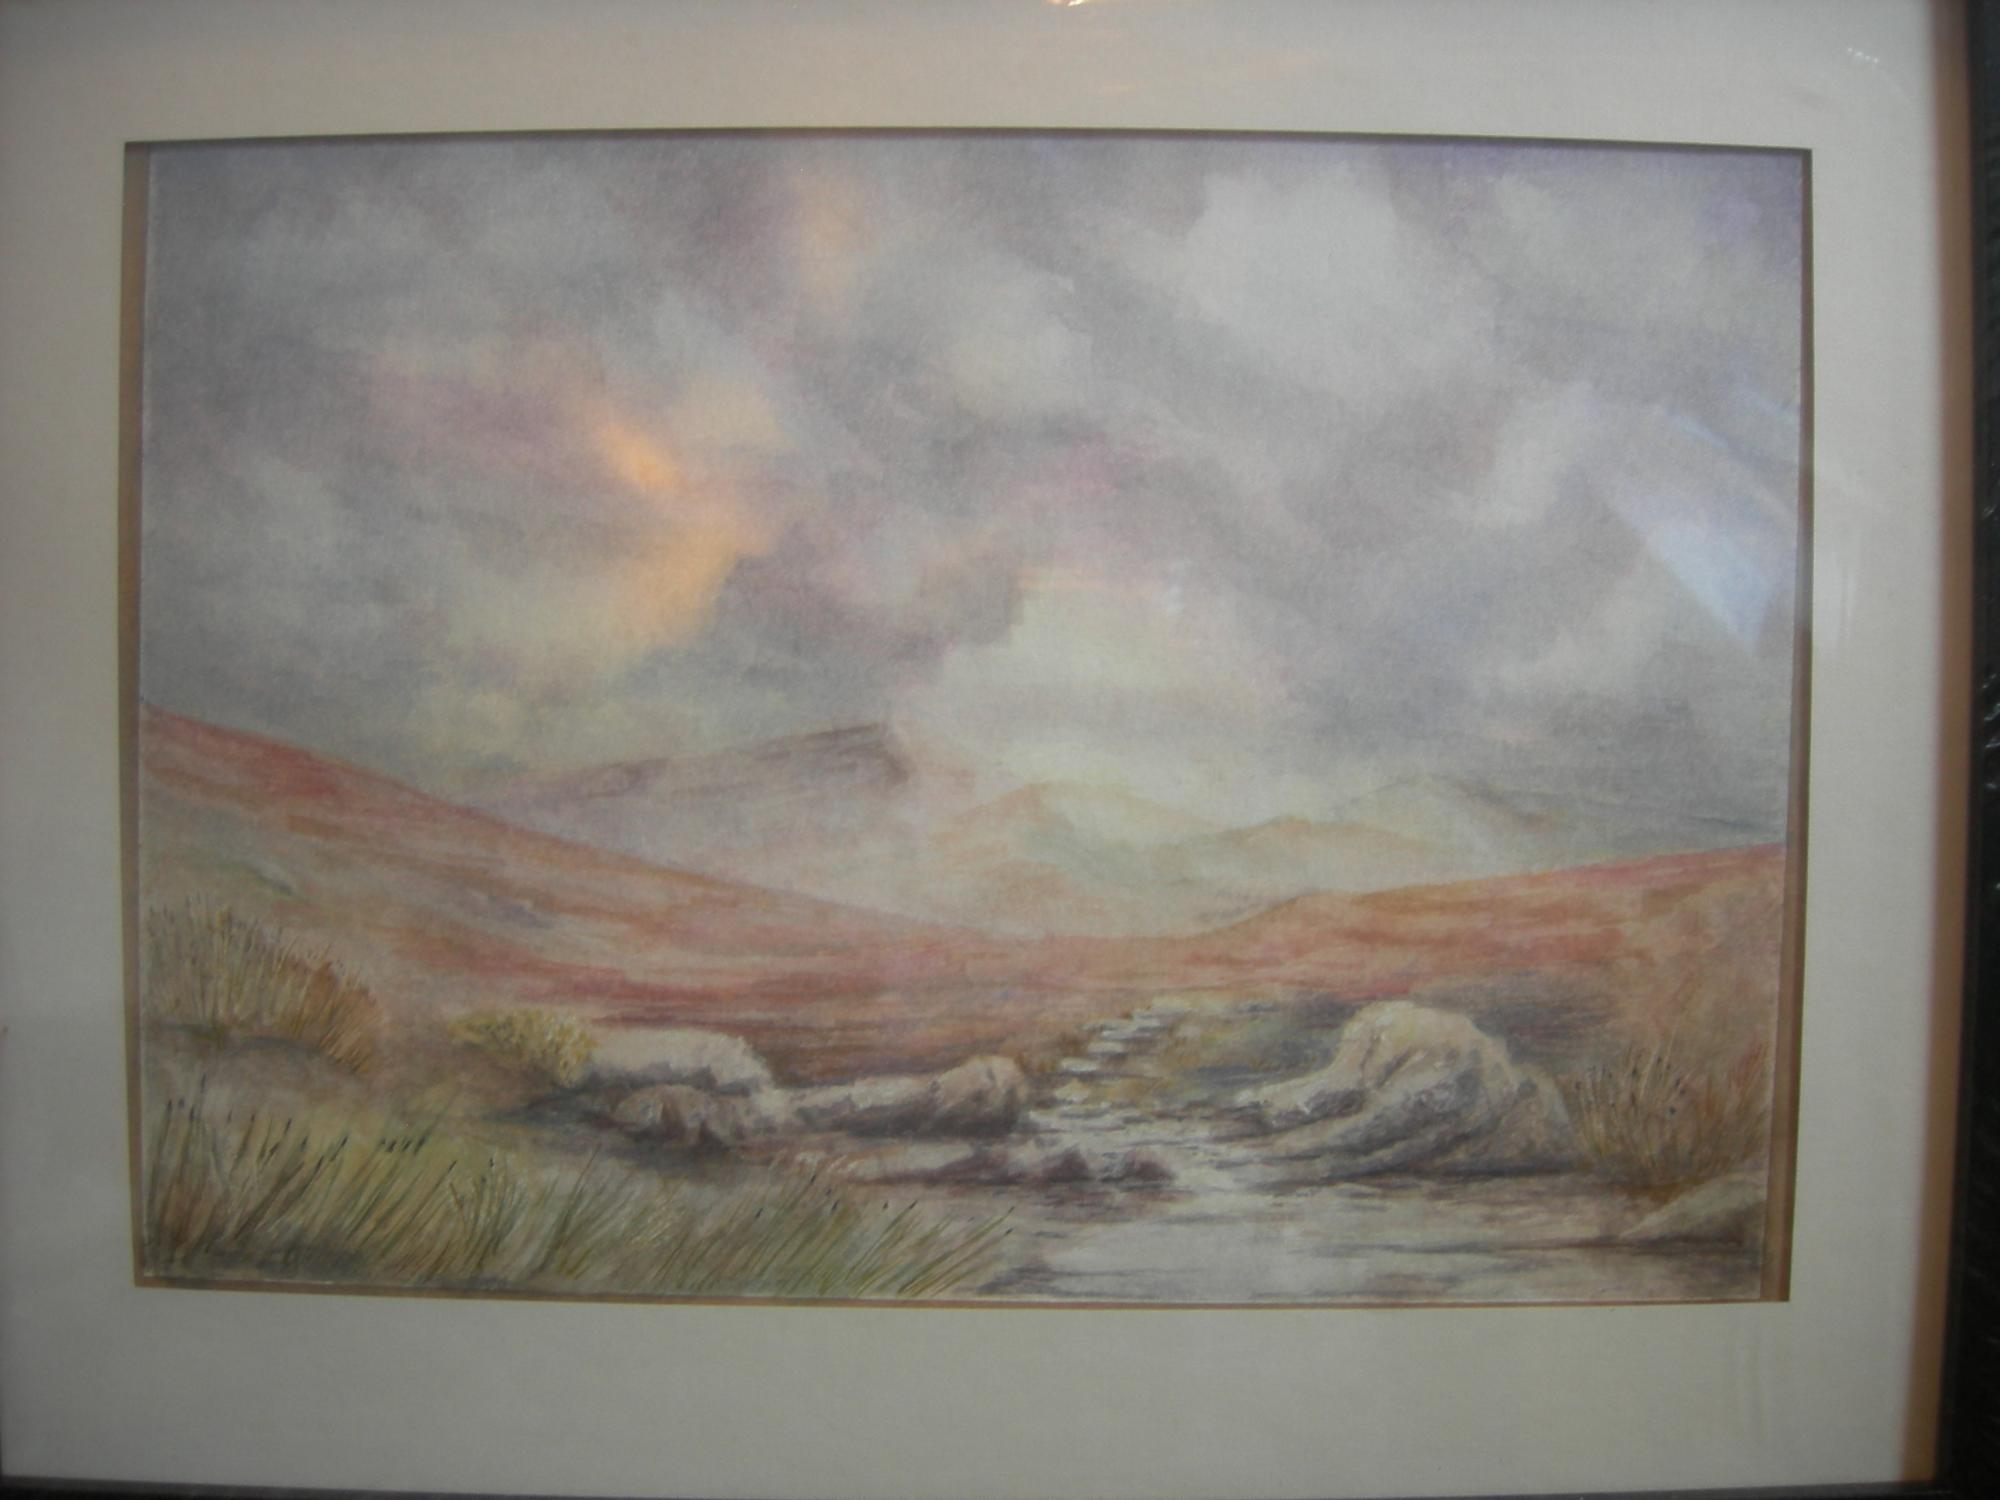 """HOUND TOR, DARTMOOR"" SOLD."